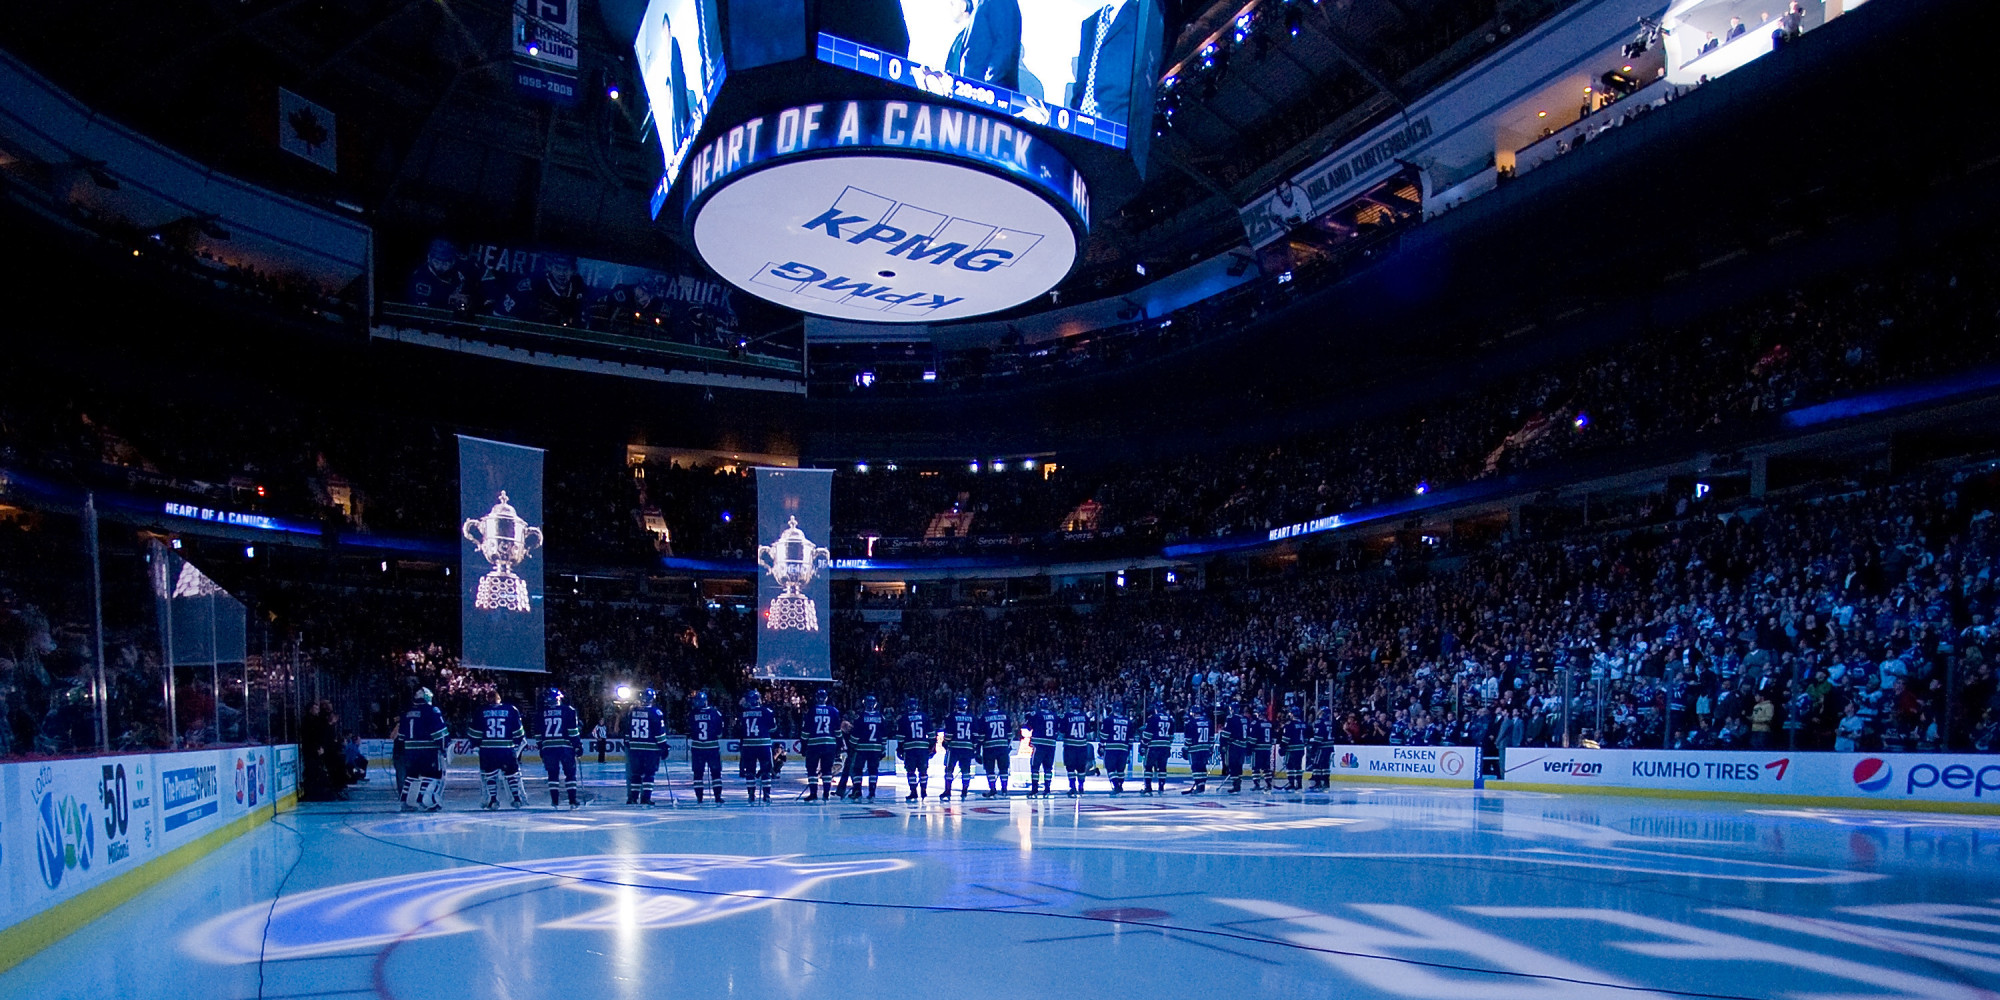 Vancouver Canucks Wallpaper Hd Vancouver Canucks Sued After Teen Claims Hit By Air Cannon